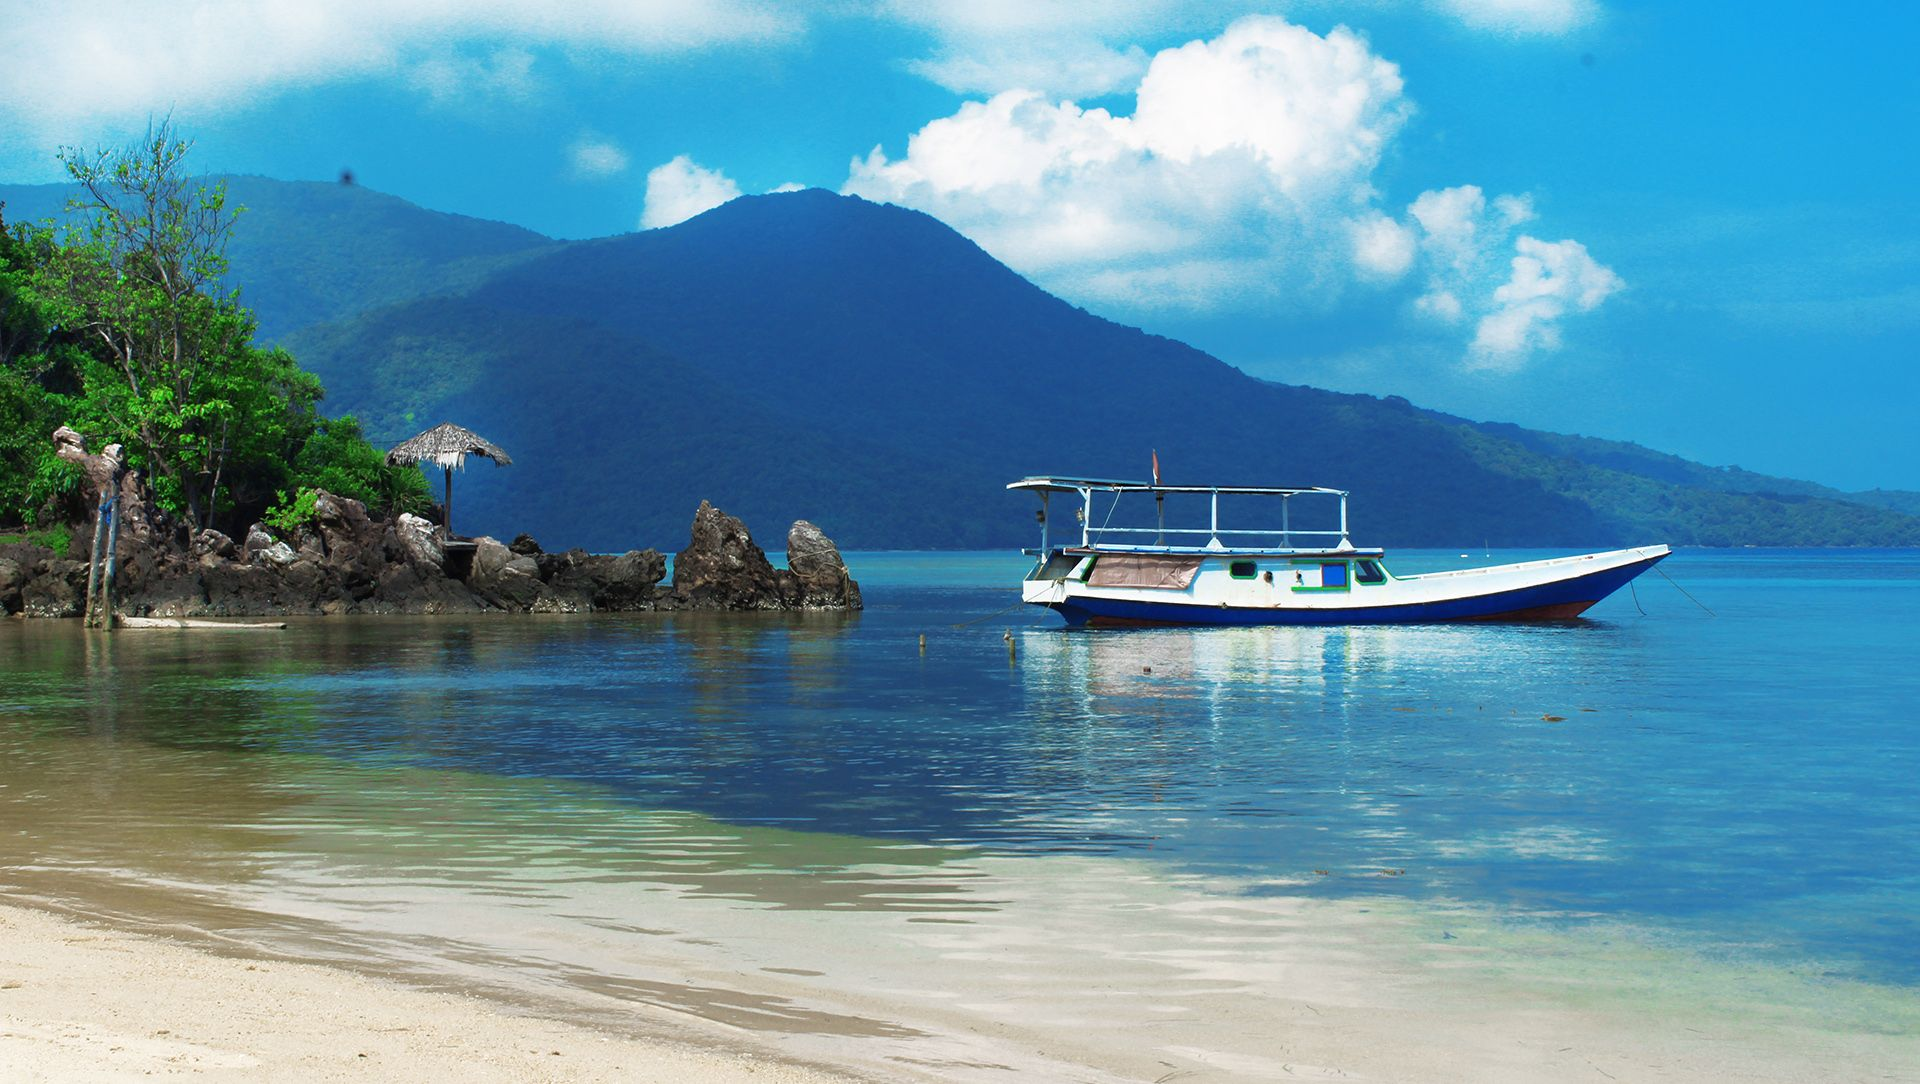 Karimun Jawa presents a beautiful natural view of the coast and also a dazzling underwater panorama